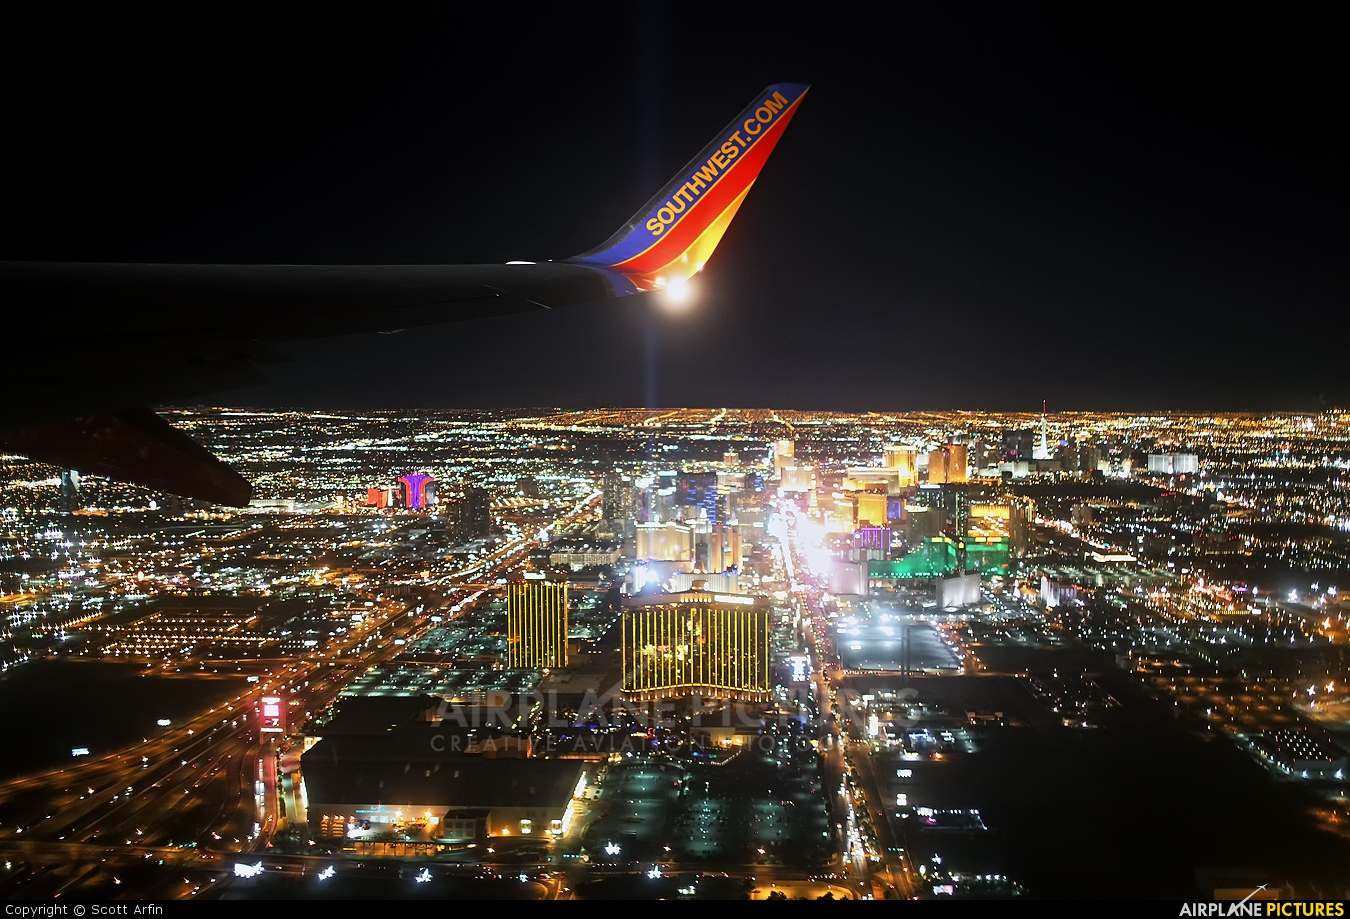 Southwest Airlines N8317M aircraft at In Flight - Nevada